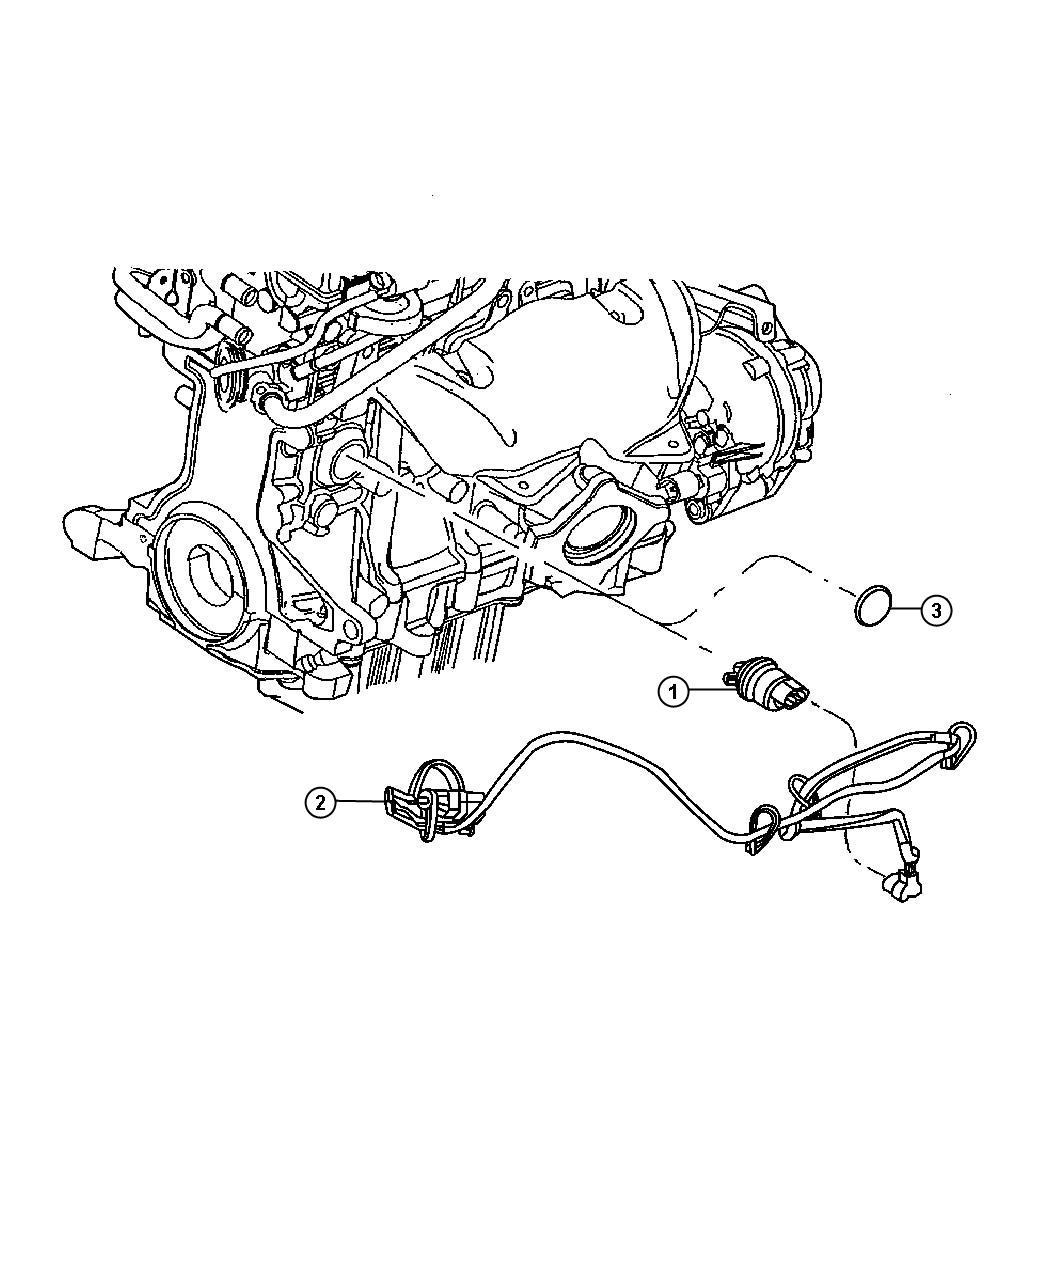 1994 dodge ram pcm wiring diagram likewise 2001 ford f350 super duty fuse box location further